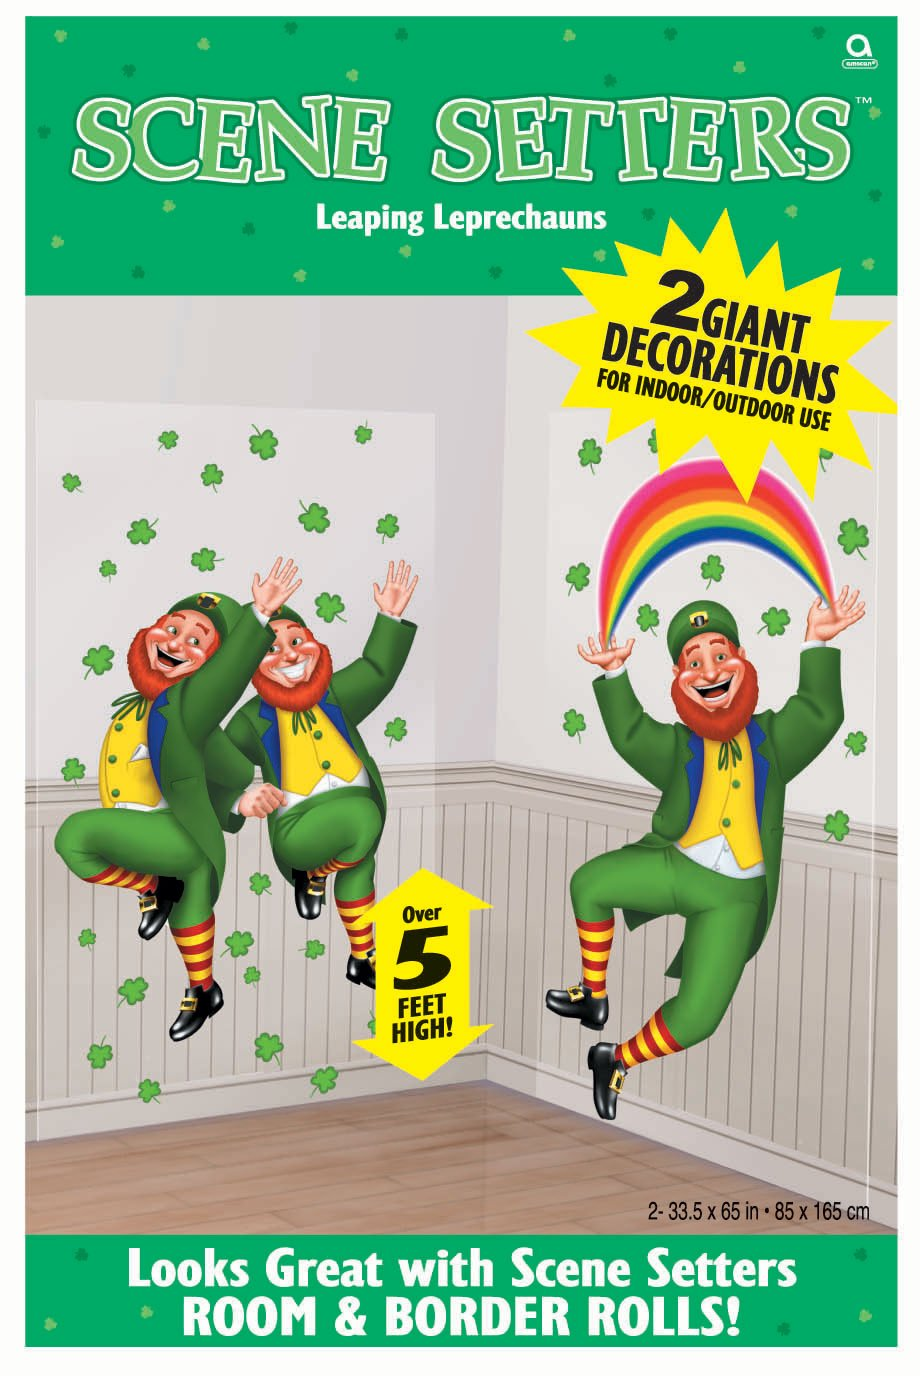 Leaping Leprechauns Add-Ons